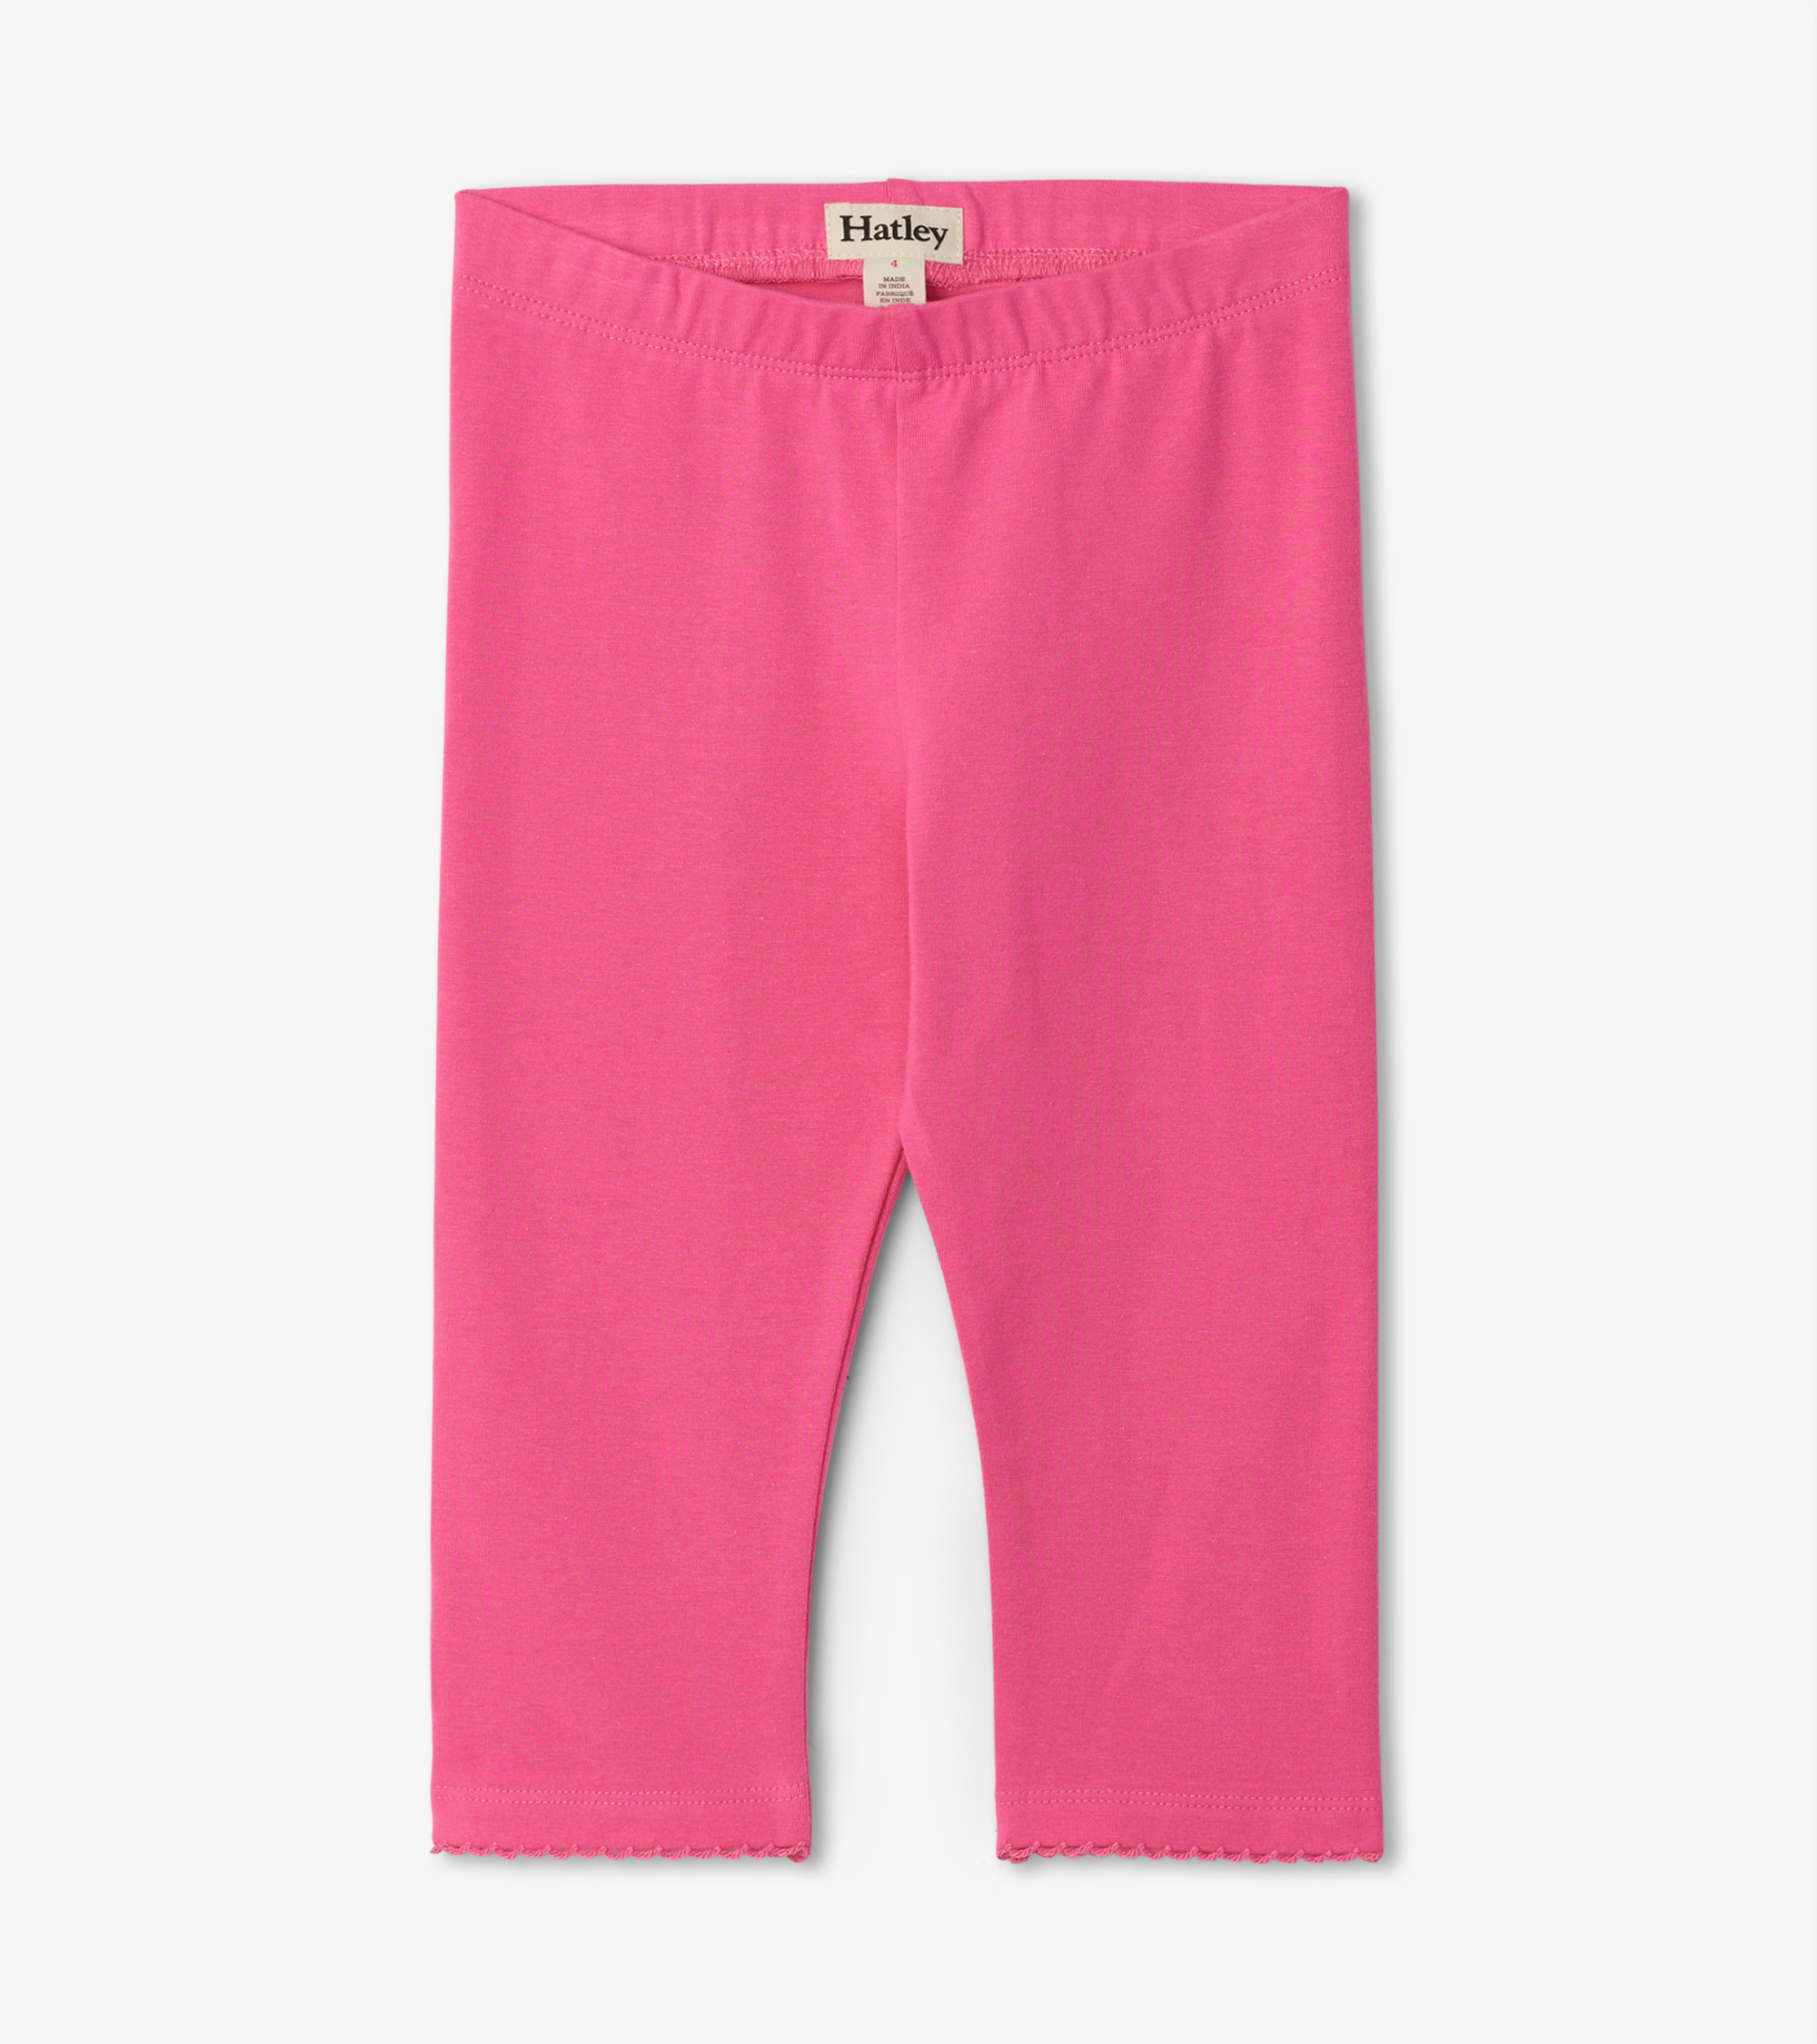 Hatley Basic Capri Leggings Pink